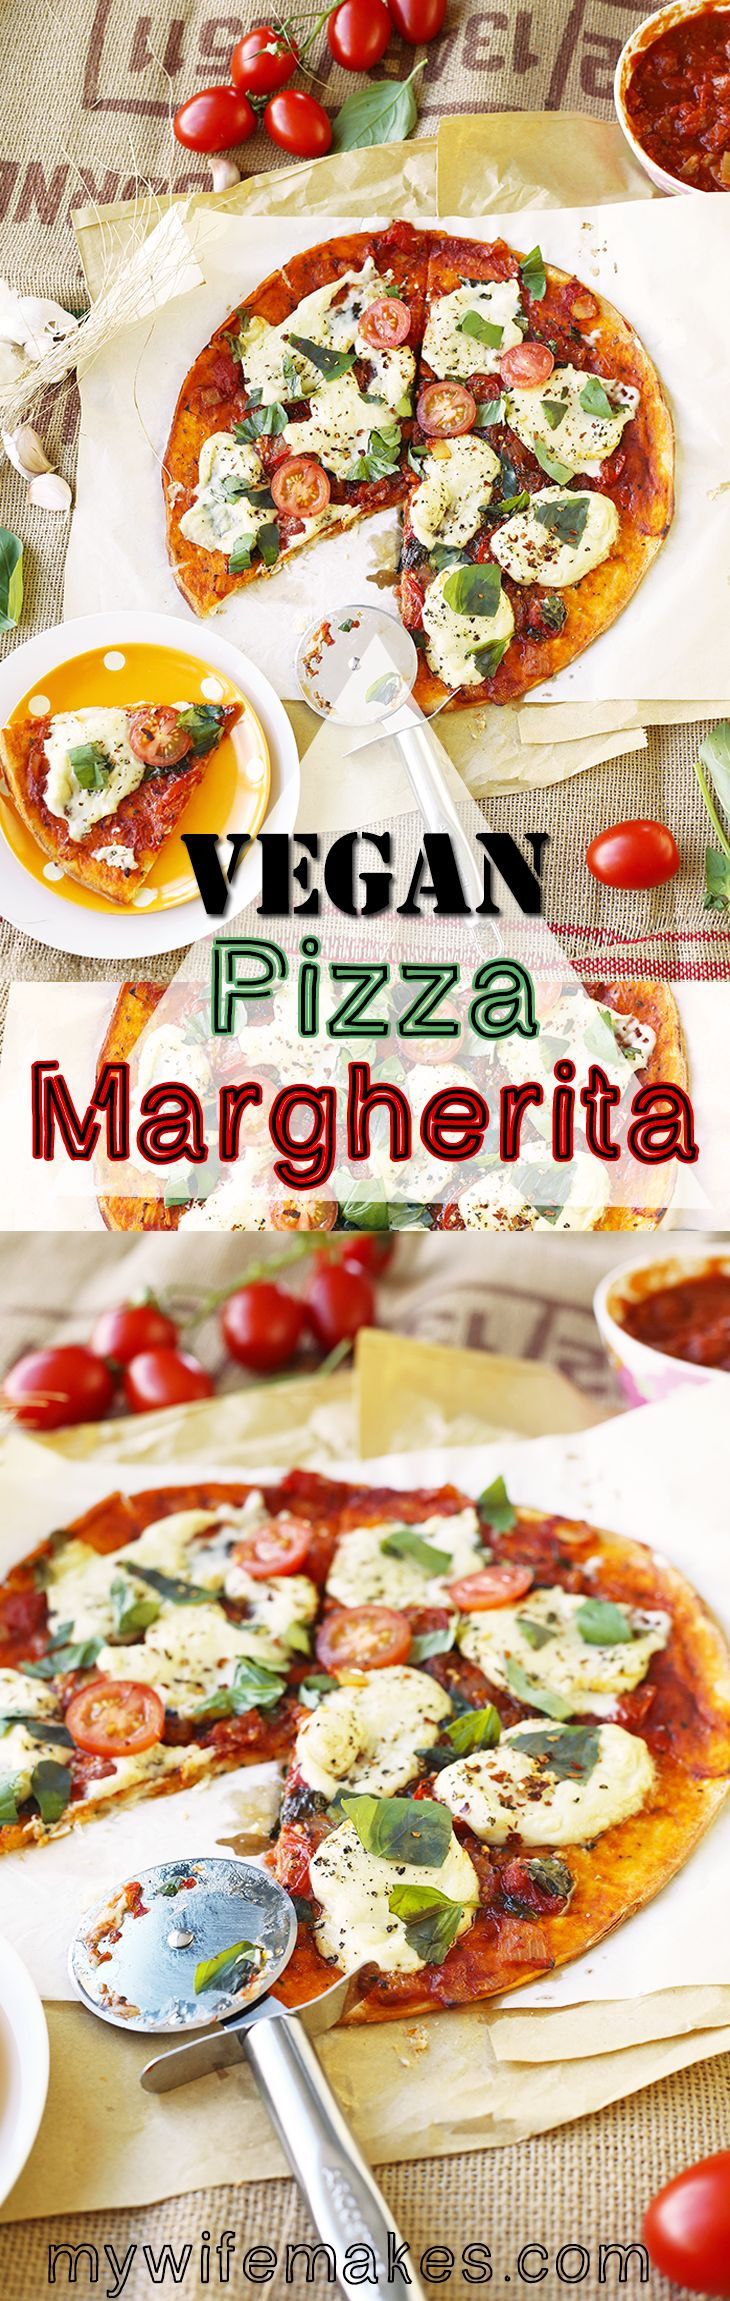 Vegan Pizza Margherita - simple, delicious, hearty, satisfying....all without the guilt. Homemade tomato sauce and Homemade Vegan Mozzarella.